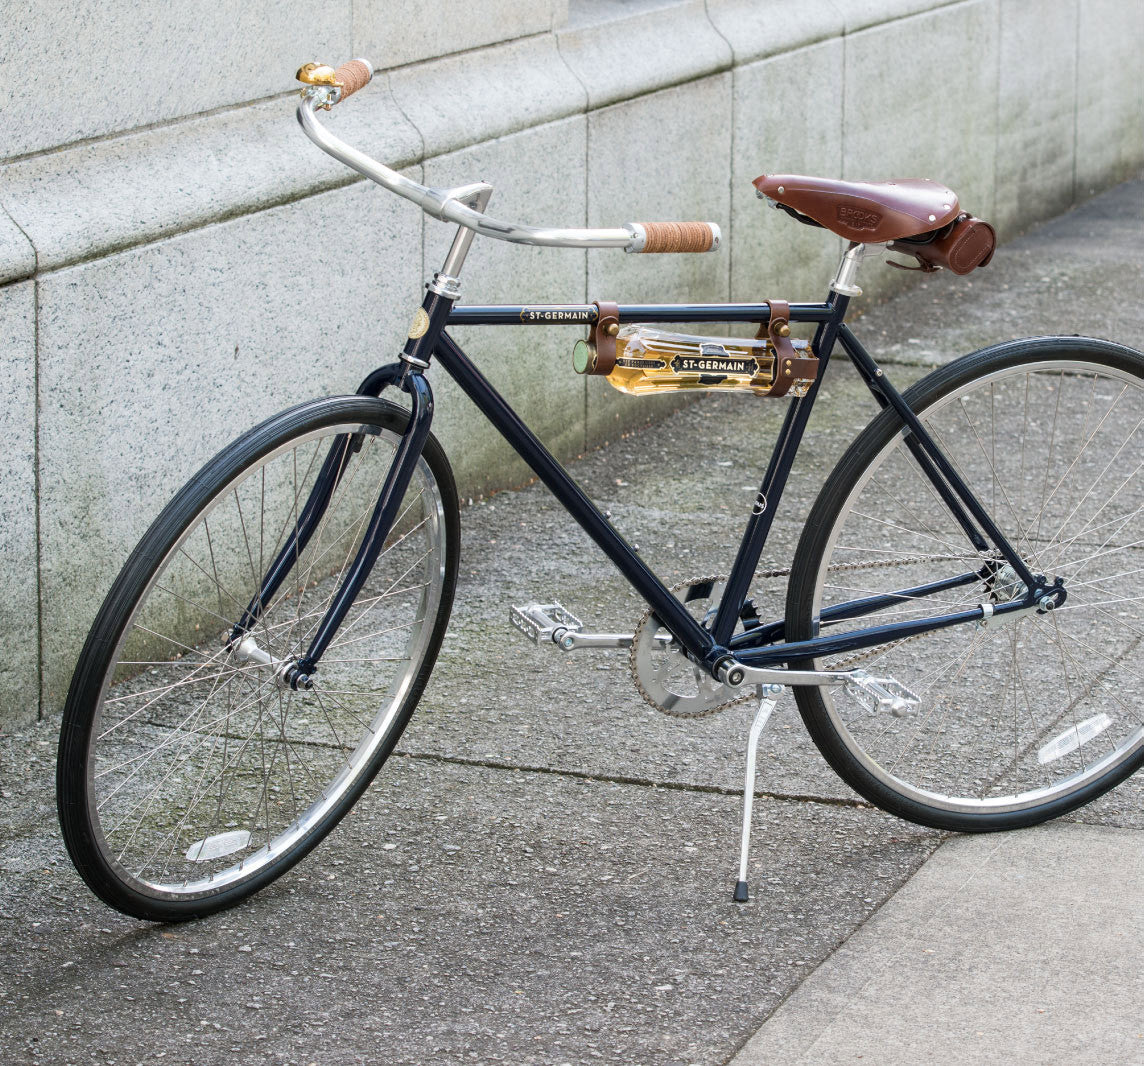 St-Germain Bicycle by Linus